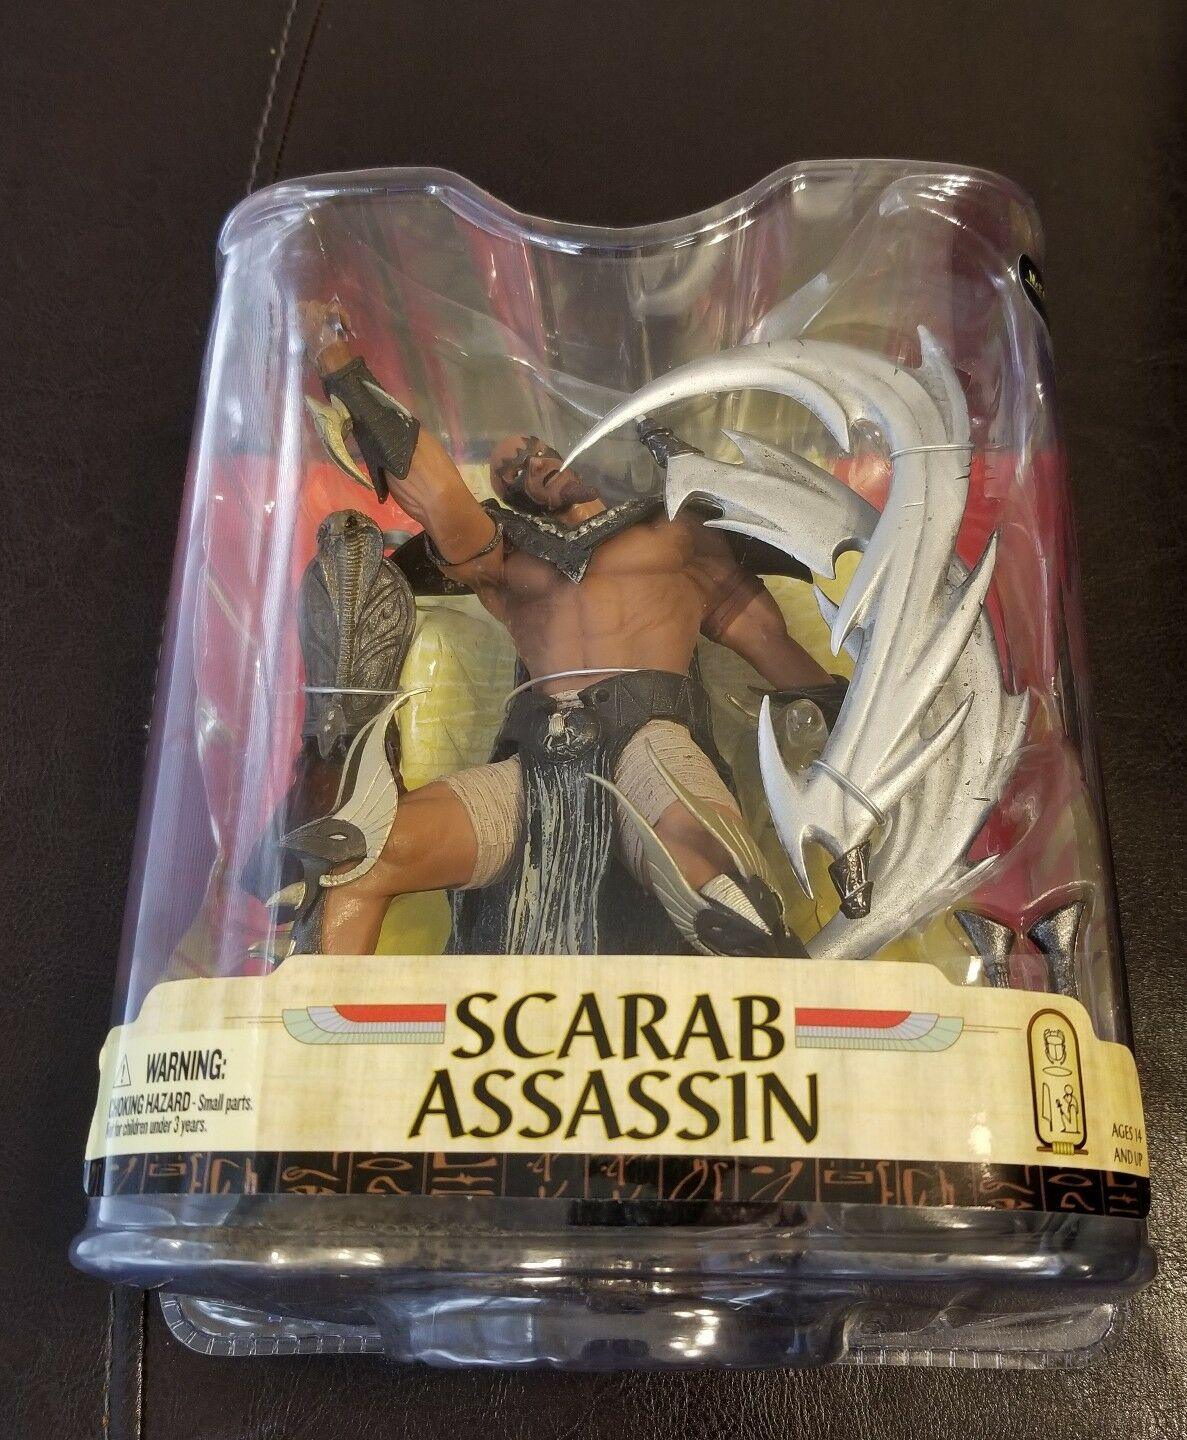 New 2008 2008 2008 Scarab Assassin Figure 6  Spawn Age Of Pharaohs Series 33 Mcfarlane a0d82f